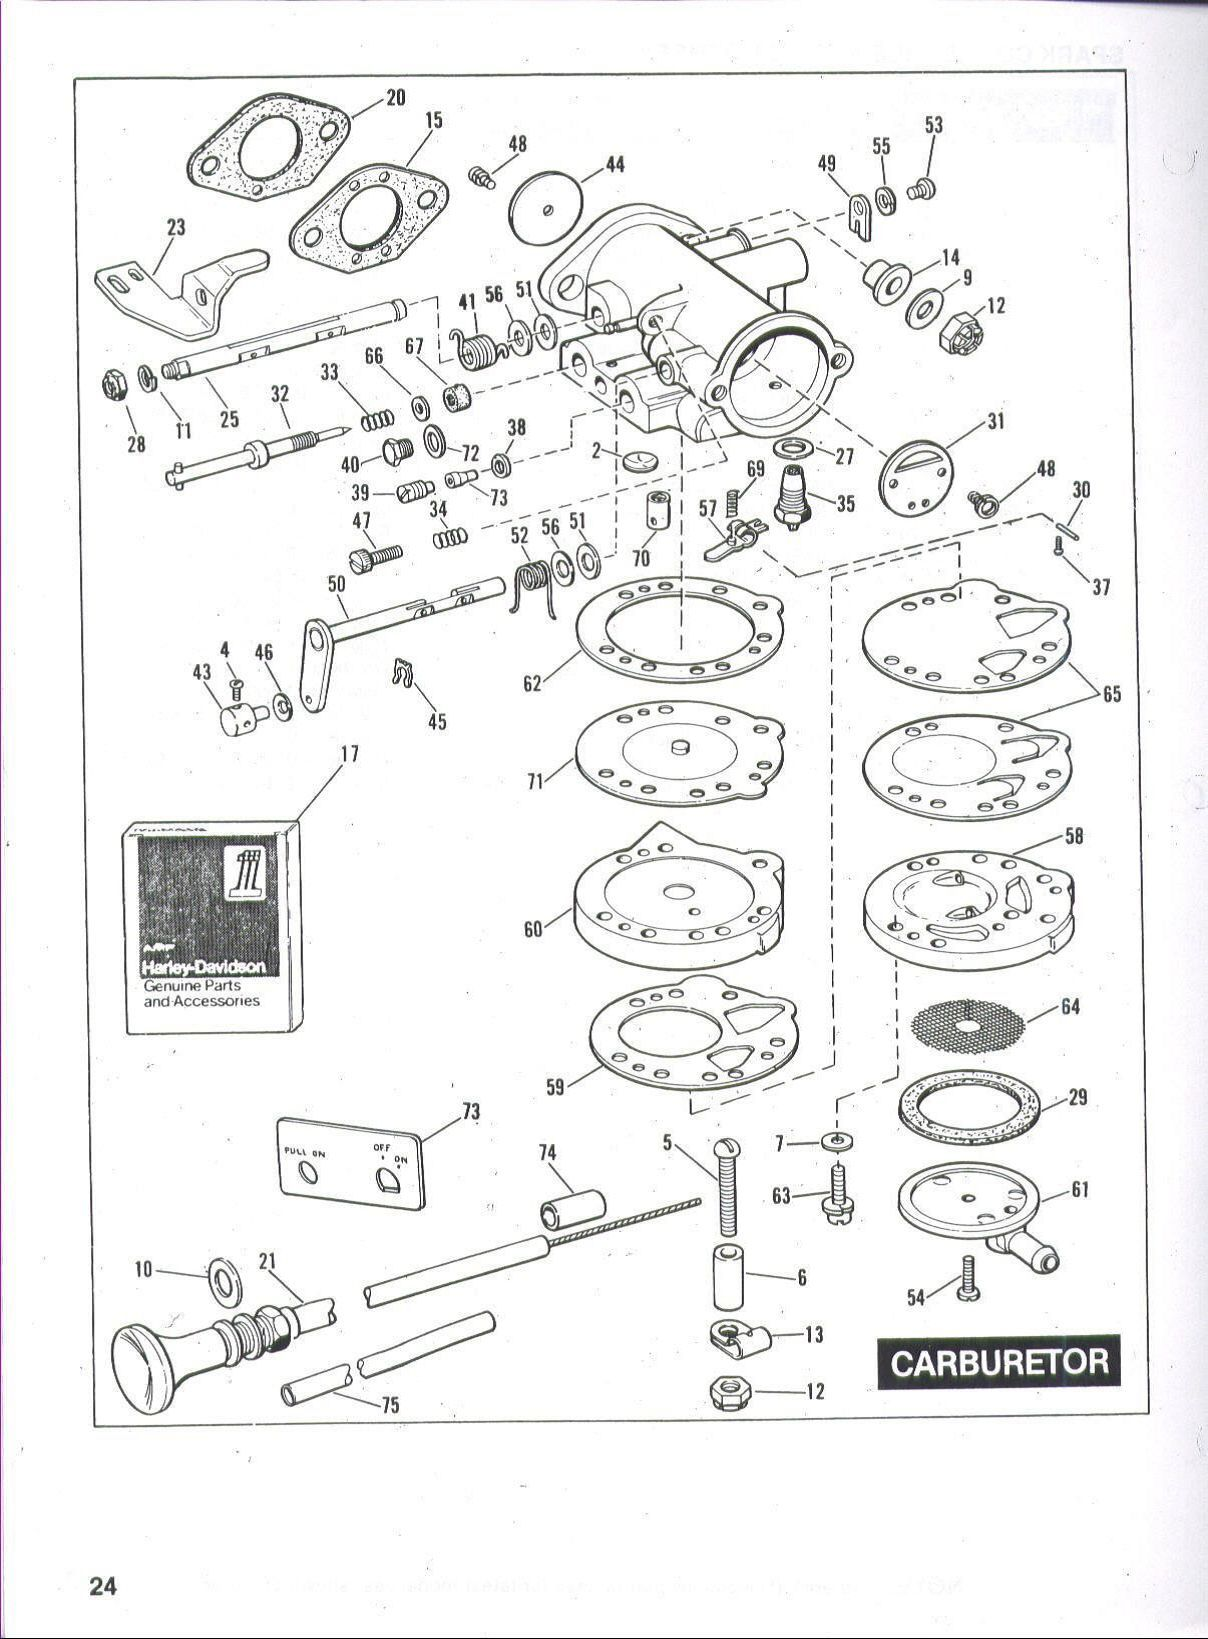 Harley Davidson Golf Cart Carburetor Diagram Utv Stuff Pinterest Xport Wiring